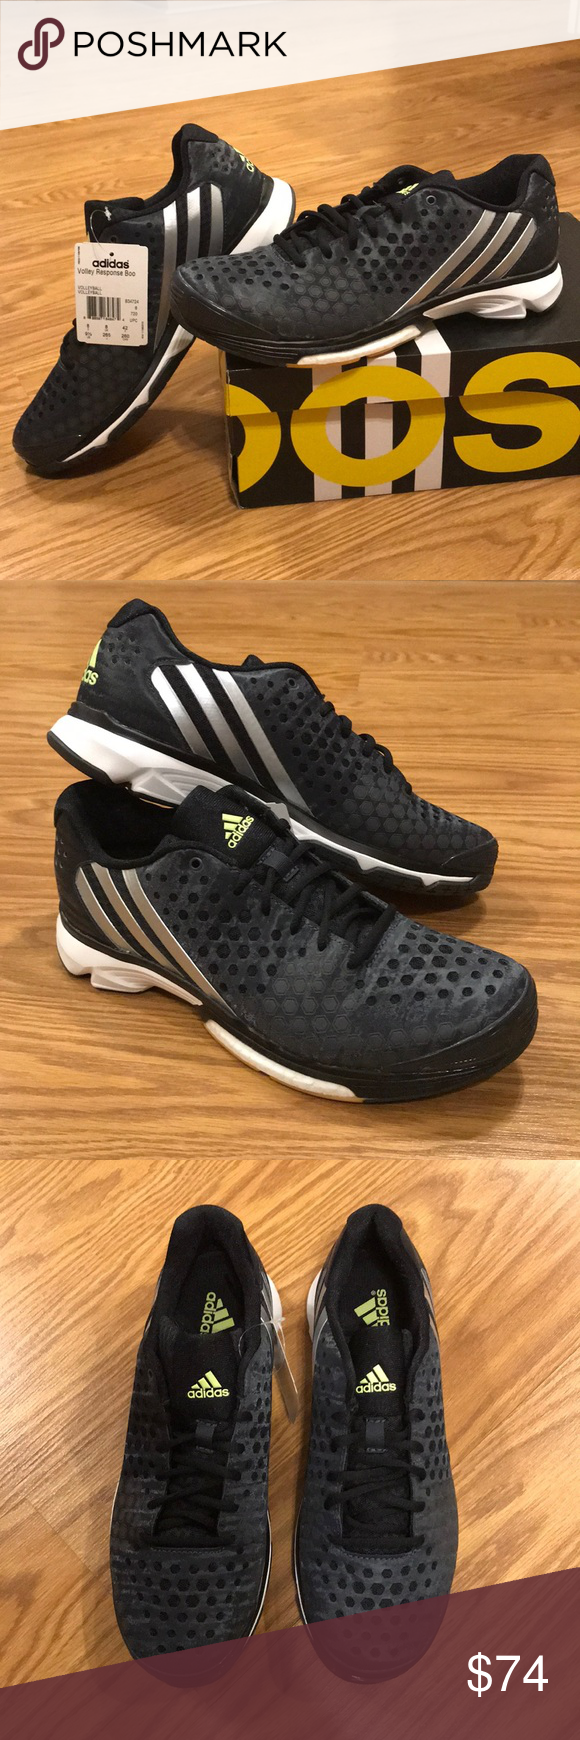 Women S Adidas Volleyball Shoes Adidas Volleyball Shoes Volleyball Shoes Adidas Women